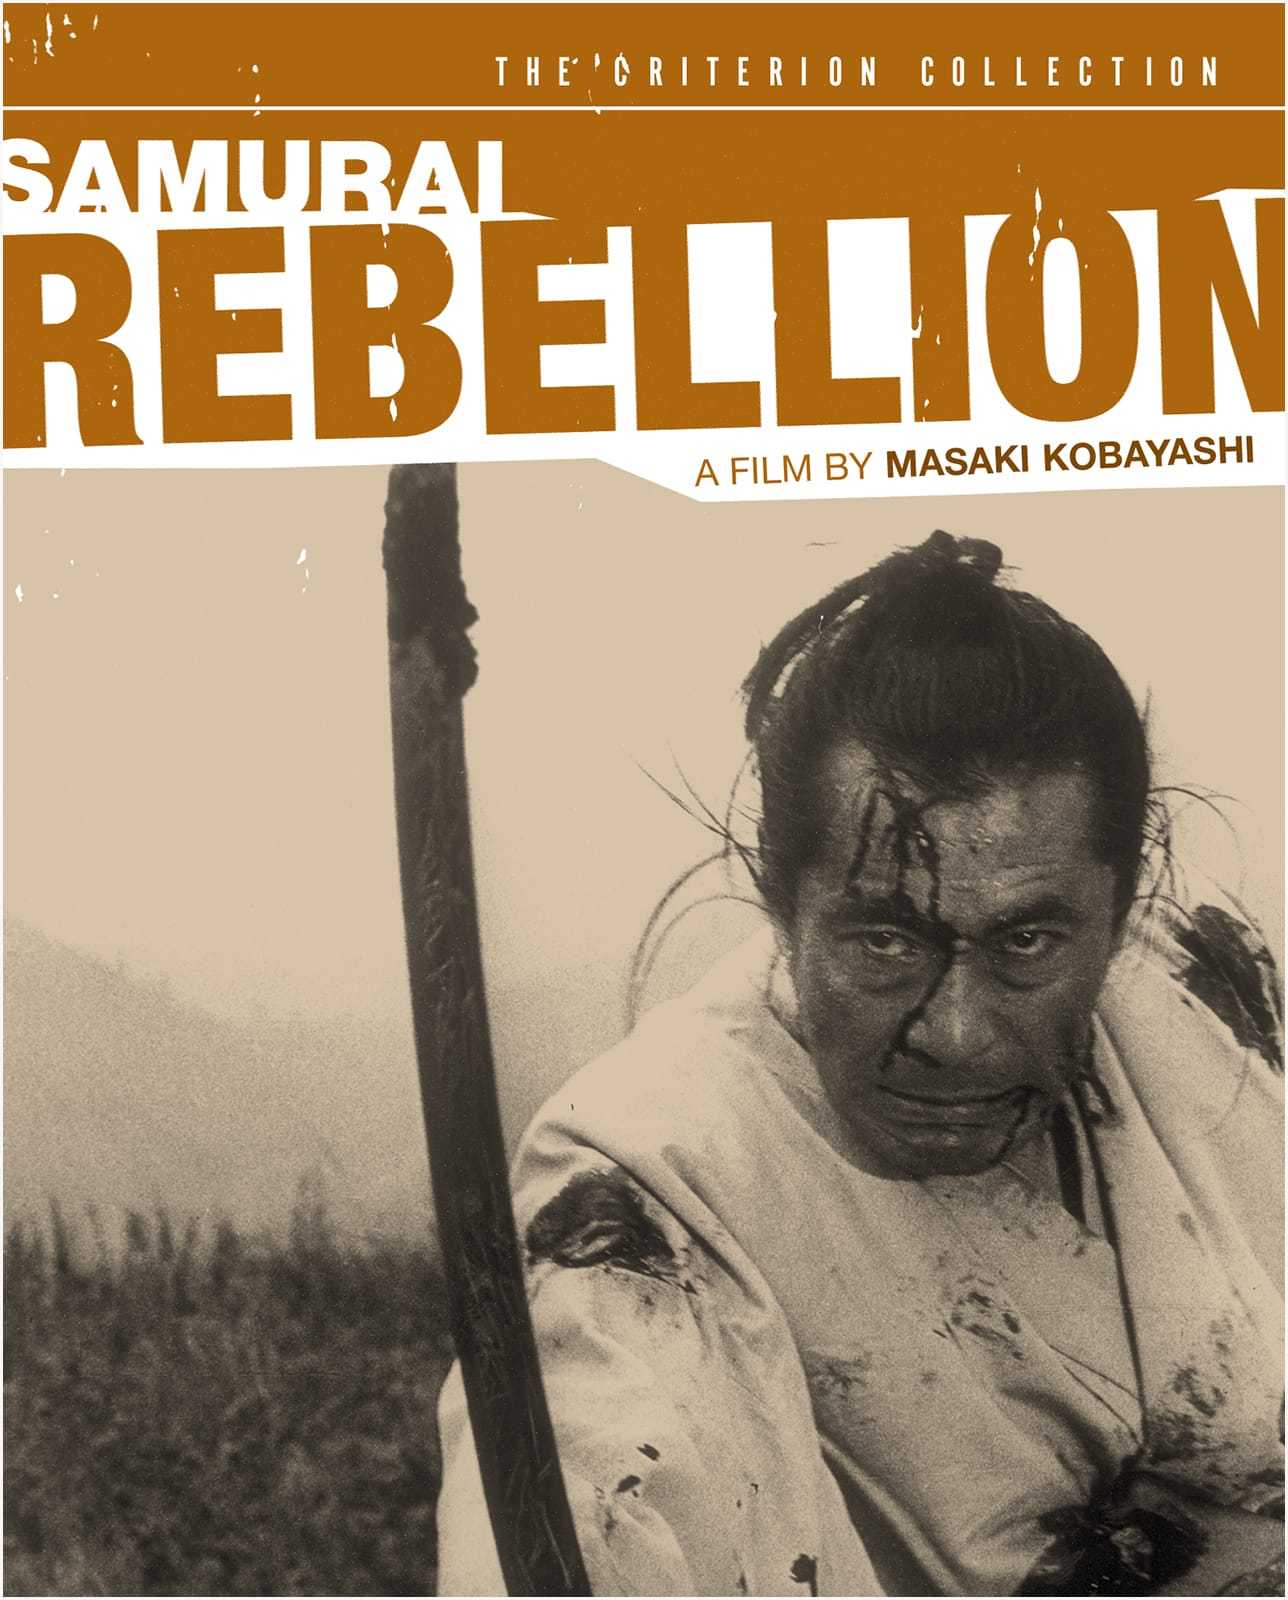 Samurai Rebellion (1967) | The Criterion Collection